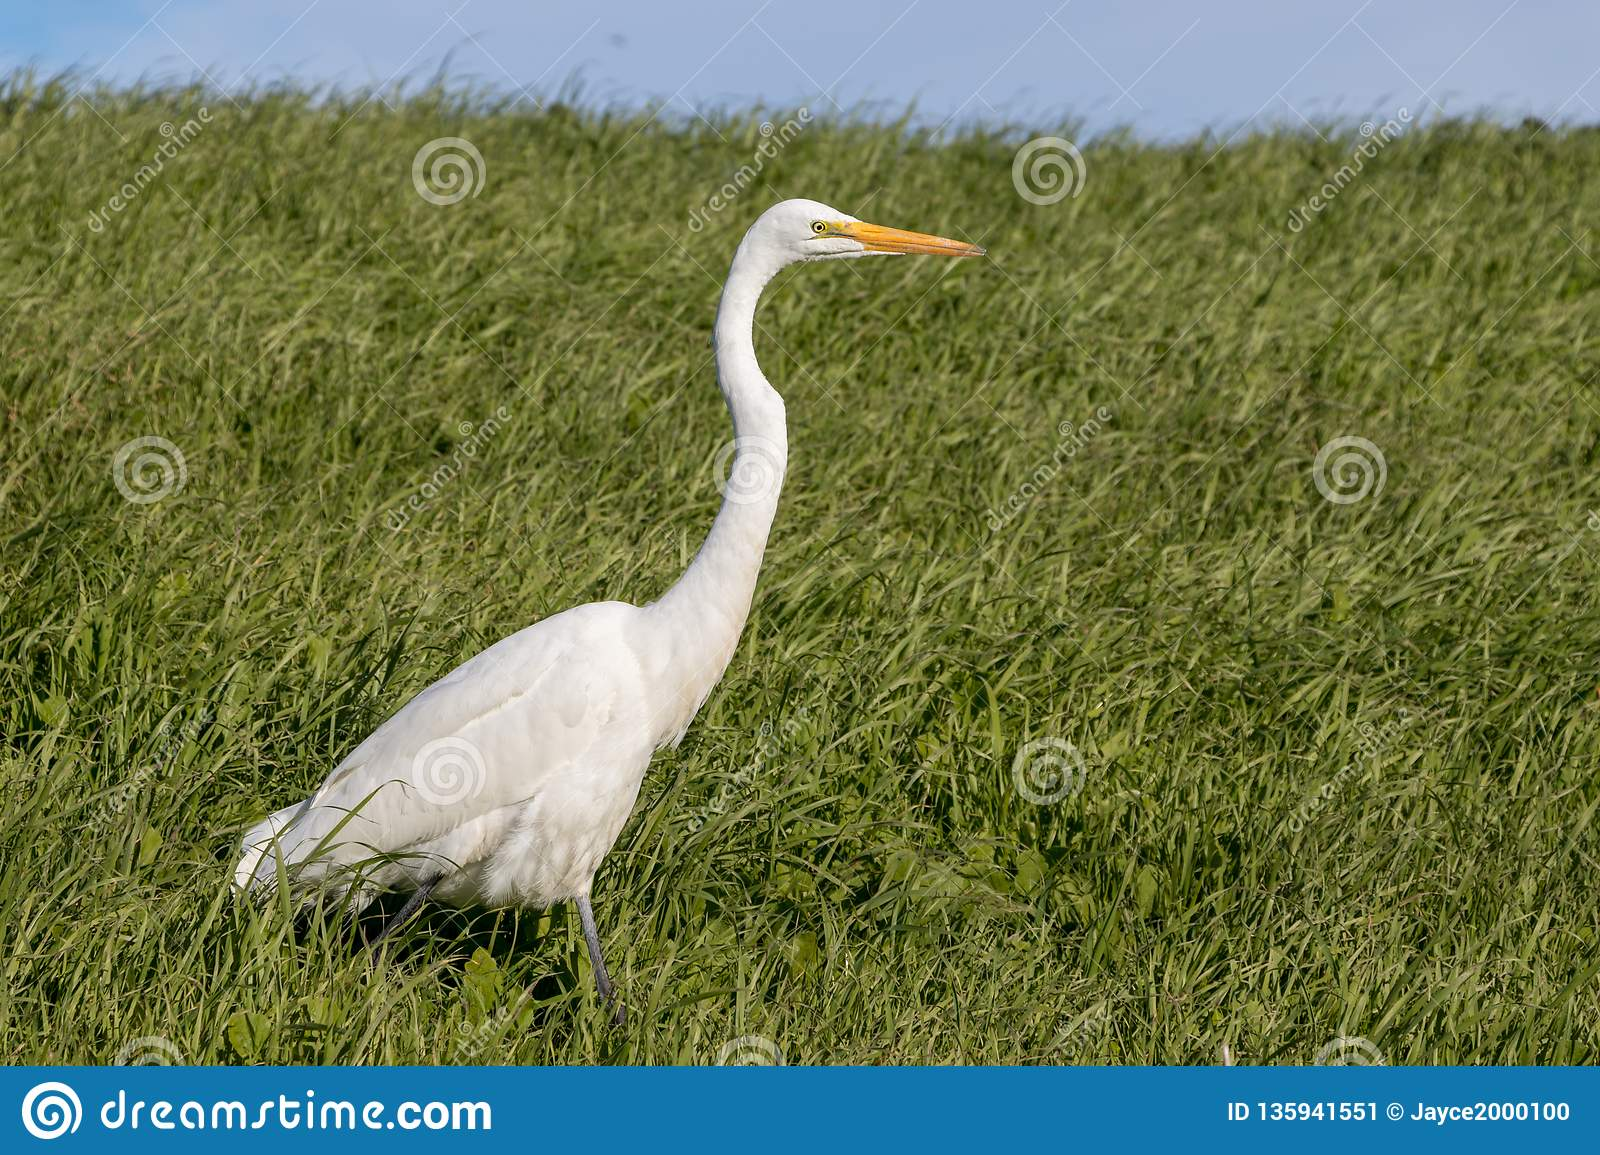 White Heron walking through tall, green grass on a sunny spring afternoon